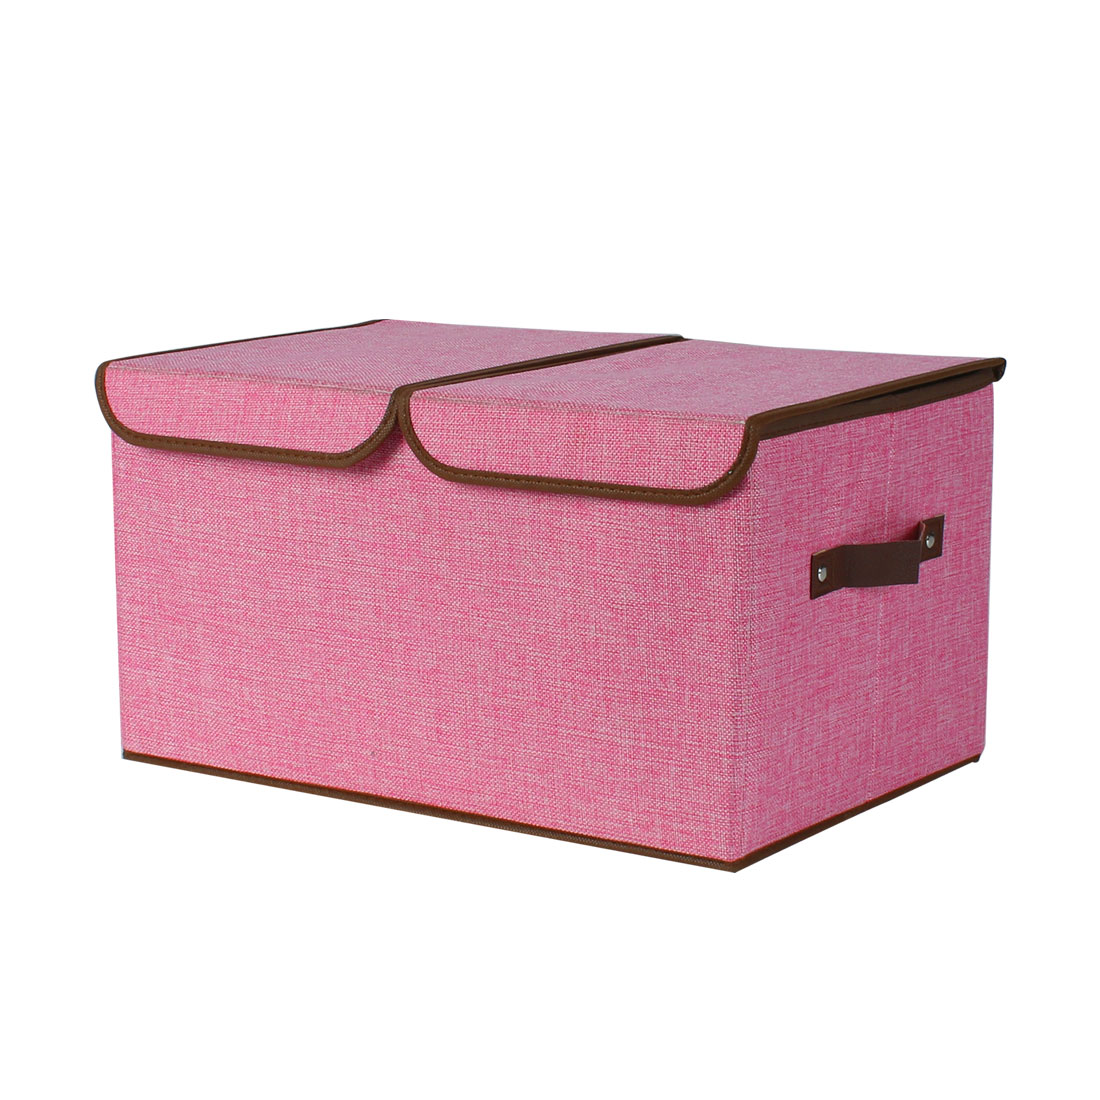 Delicieux Fabric Storage Bin Cube Laundry Basket With Handle For Home Organizer Pink